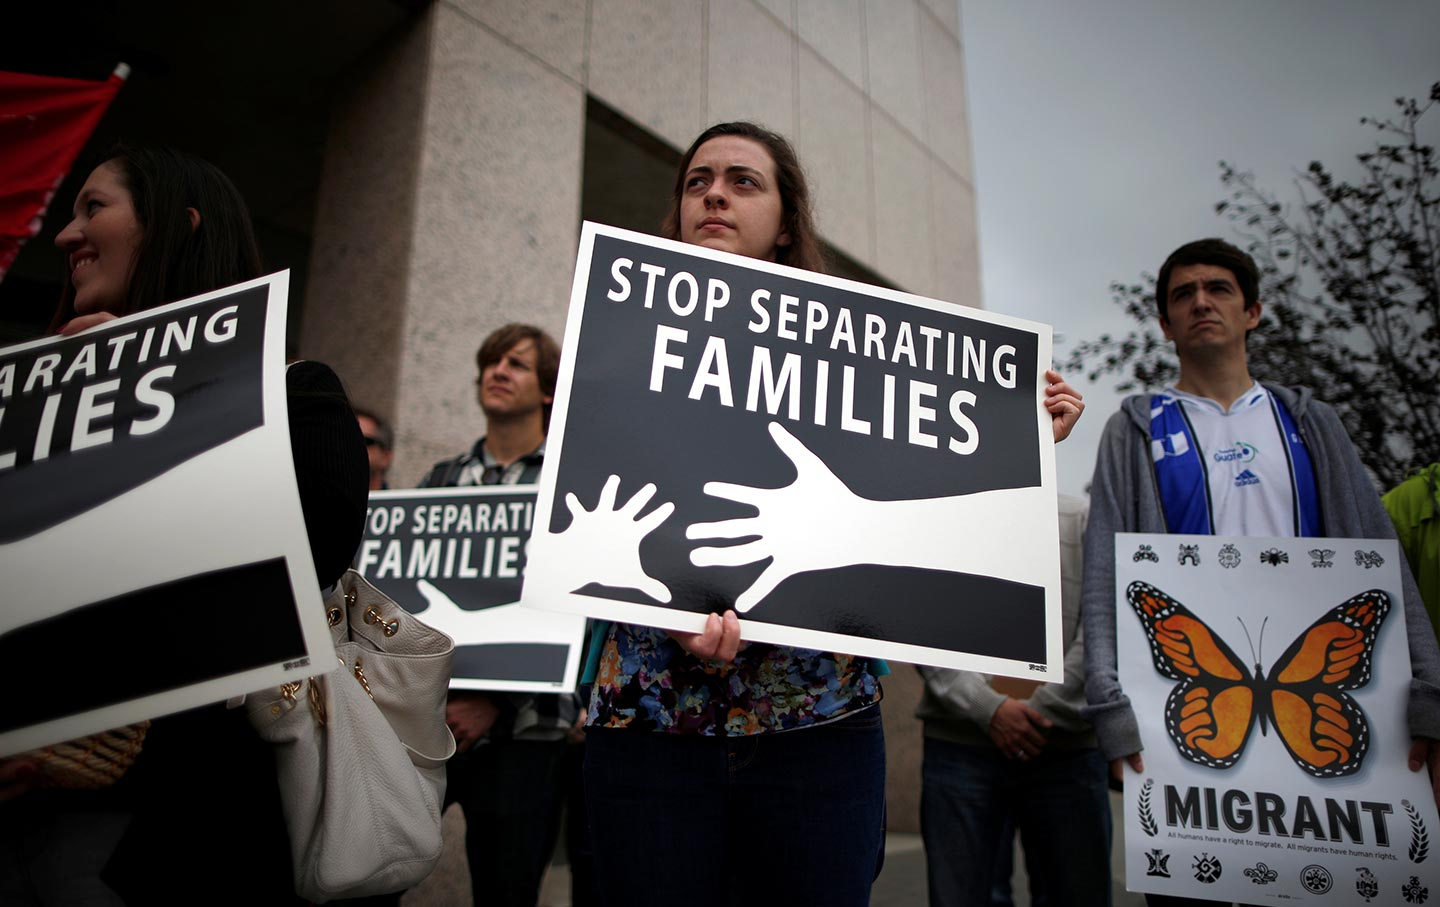 Undocumented Immigrants - Choosing between death and deportation